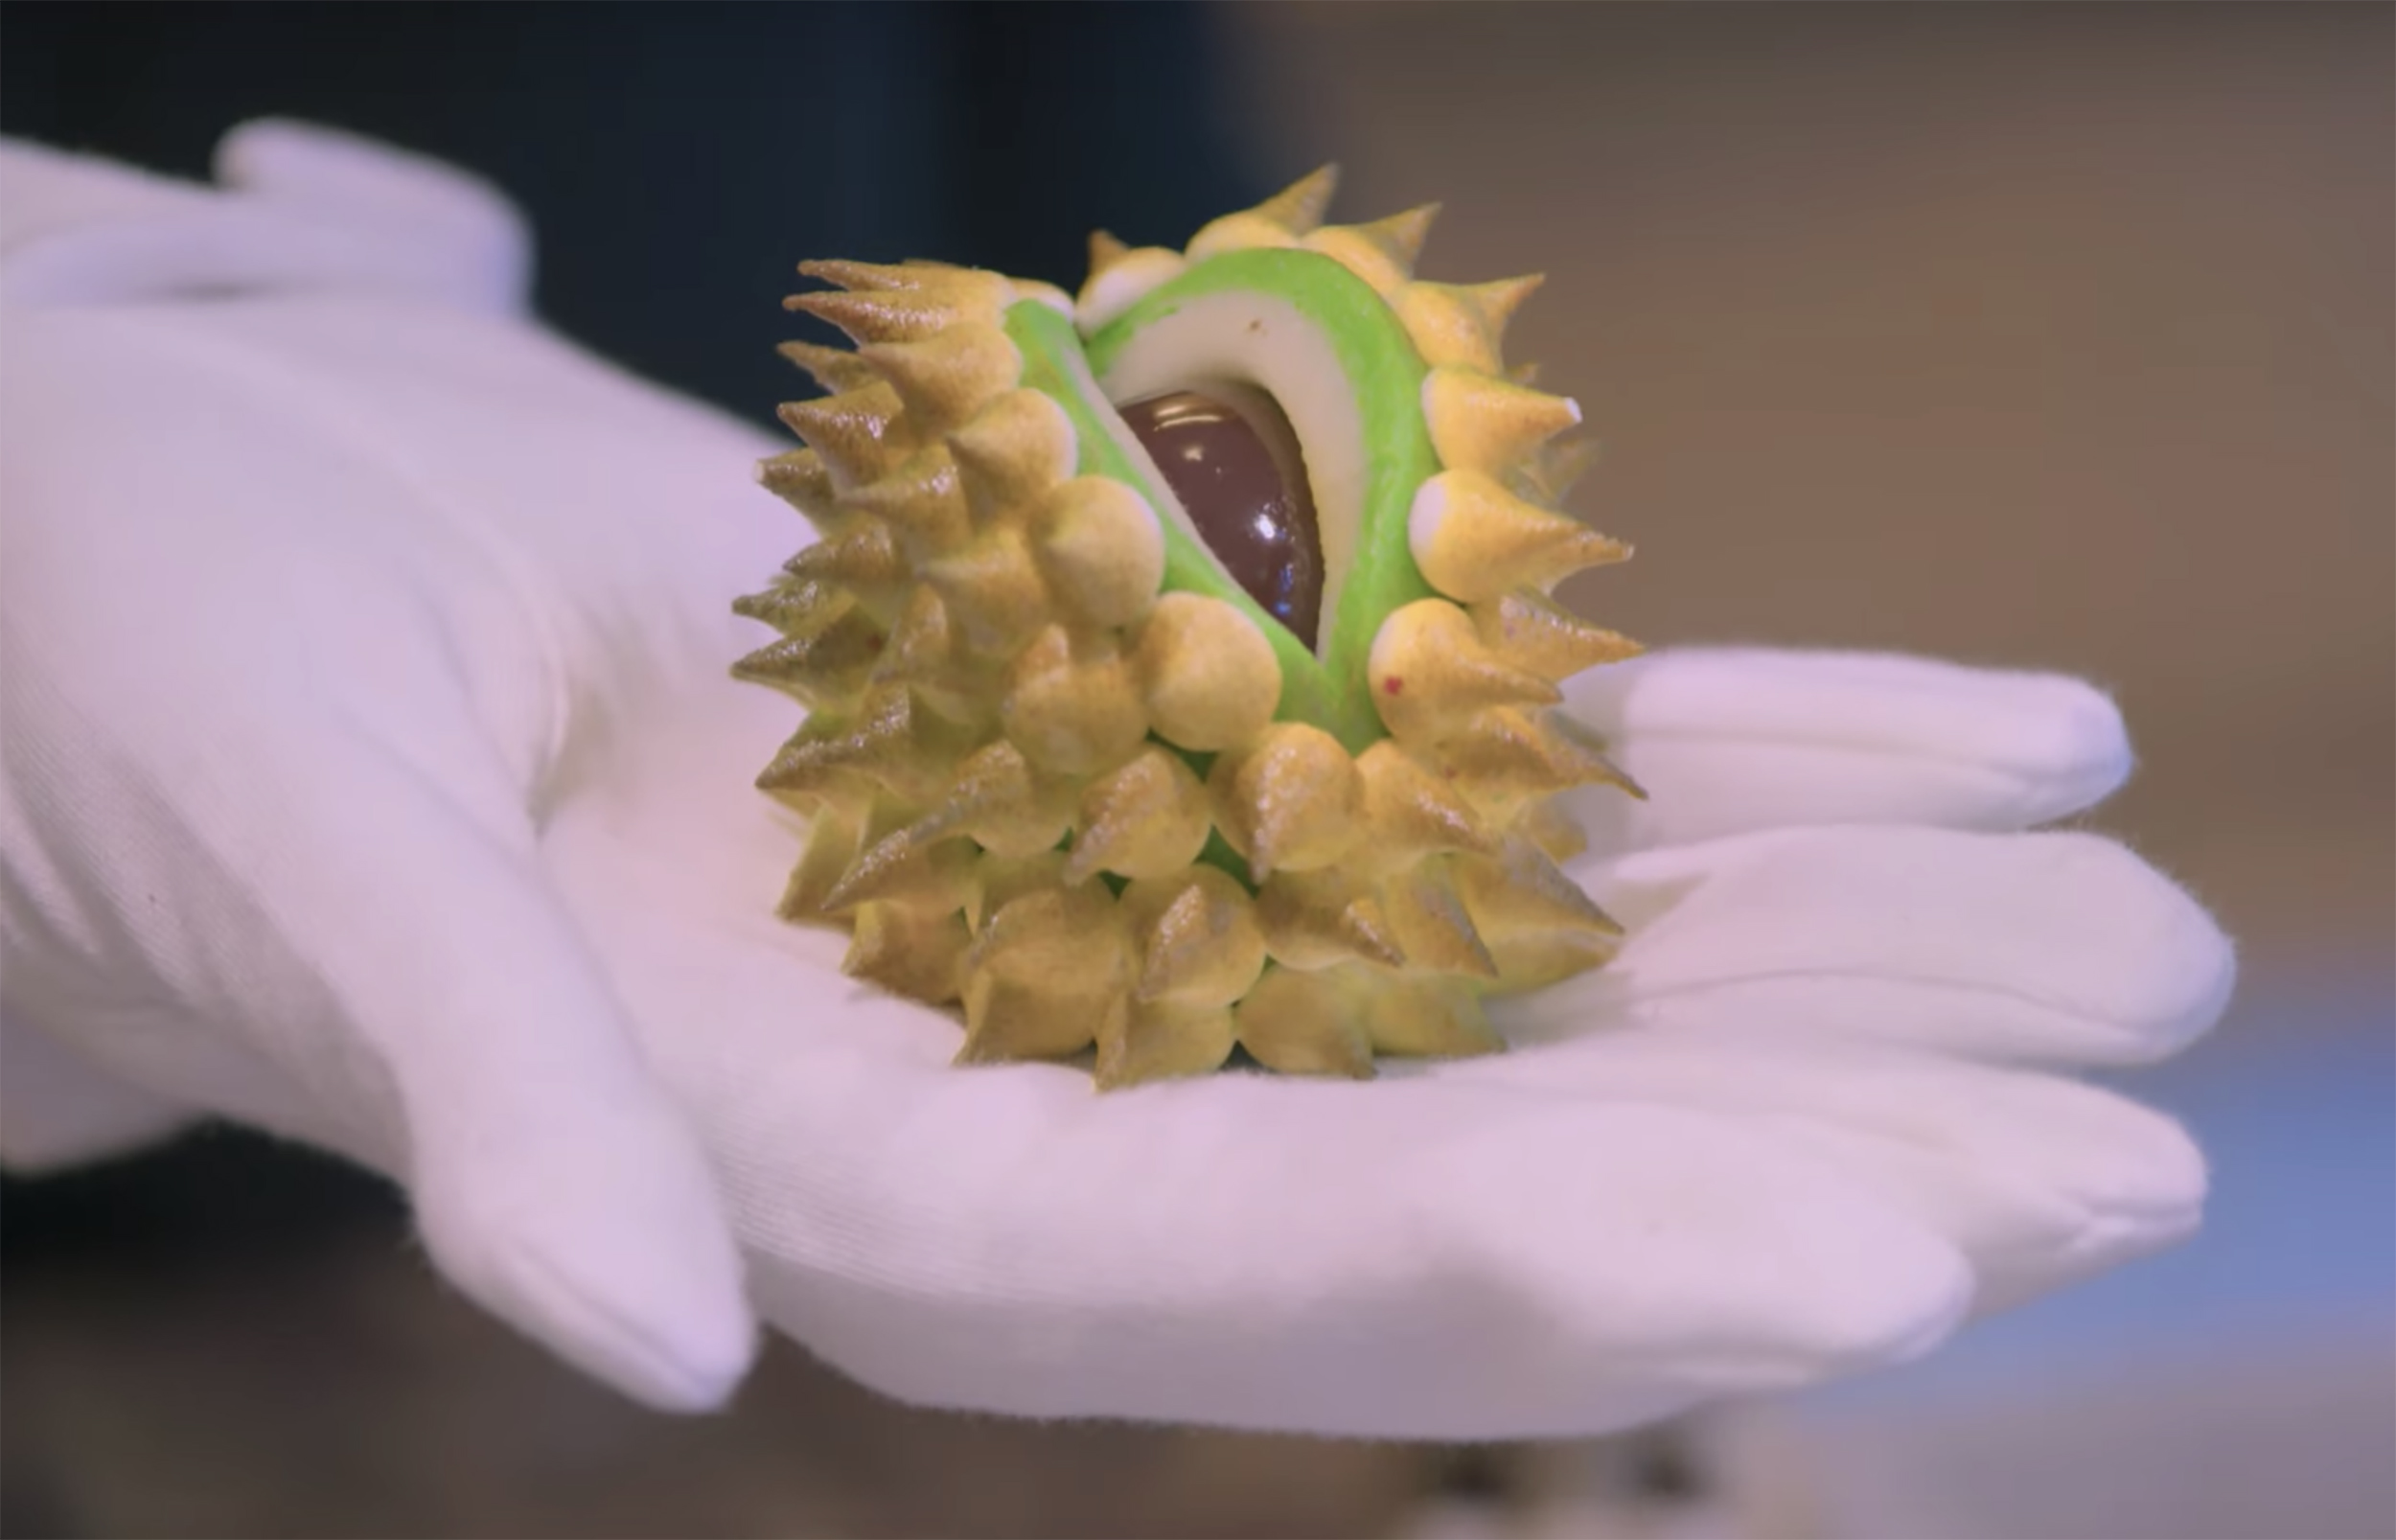 A spiky, green-and-yellow cocoa bulb